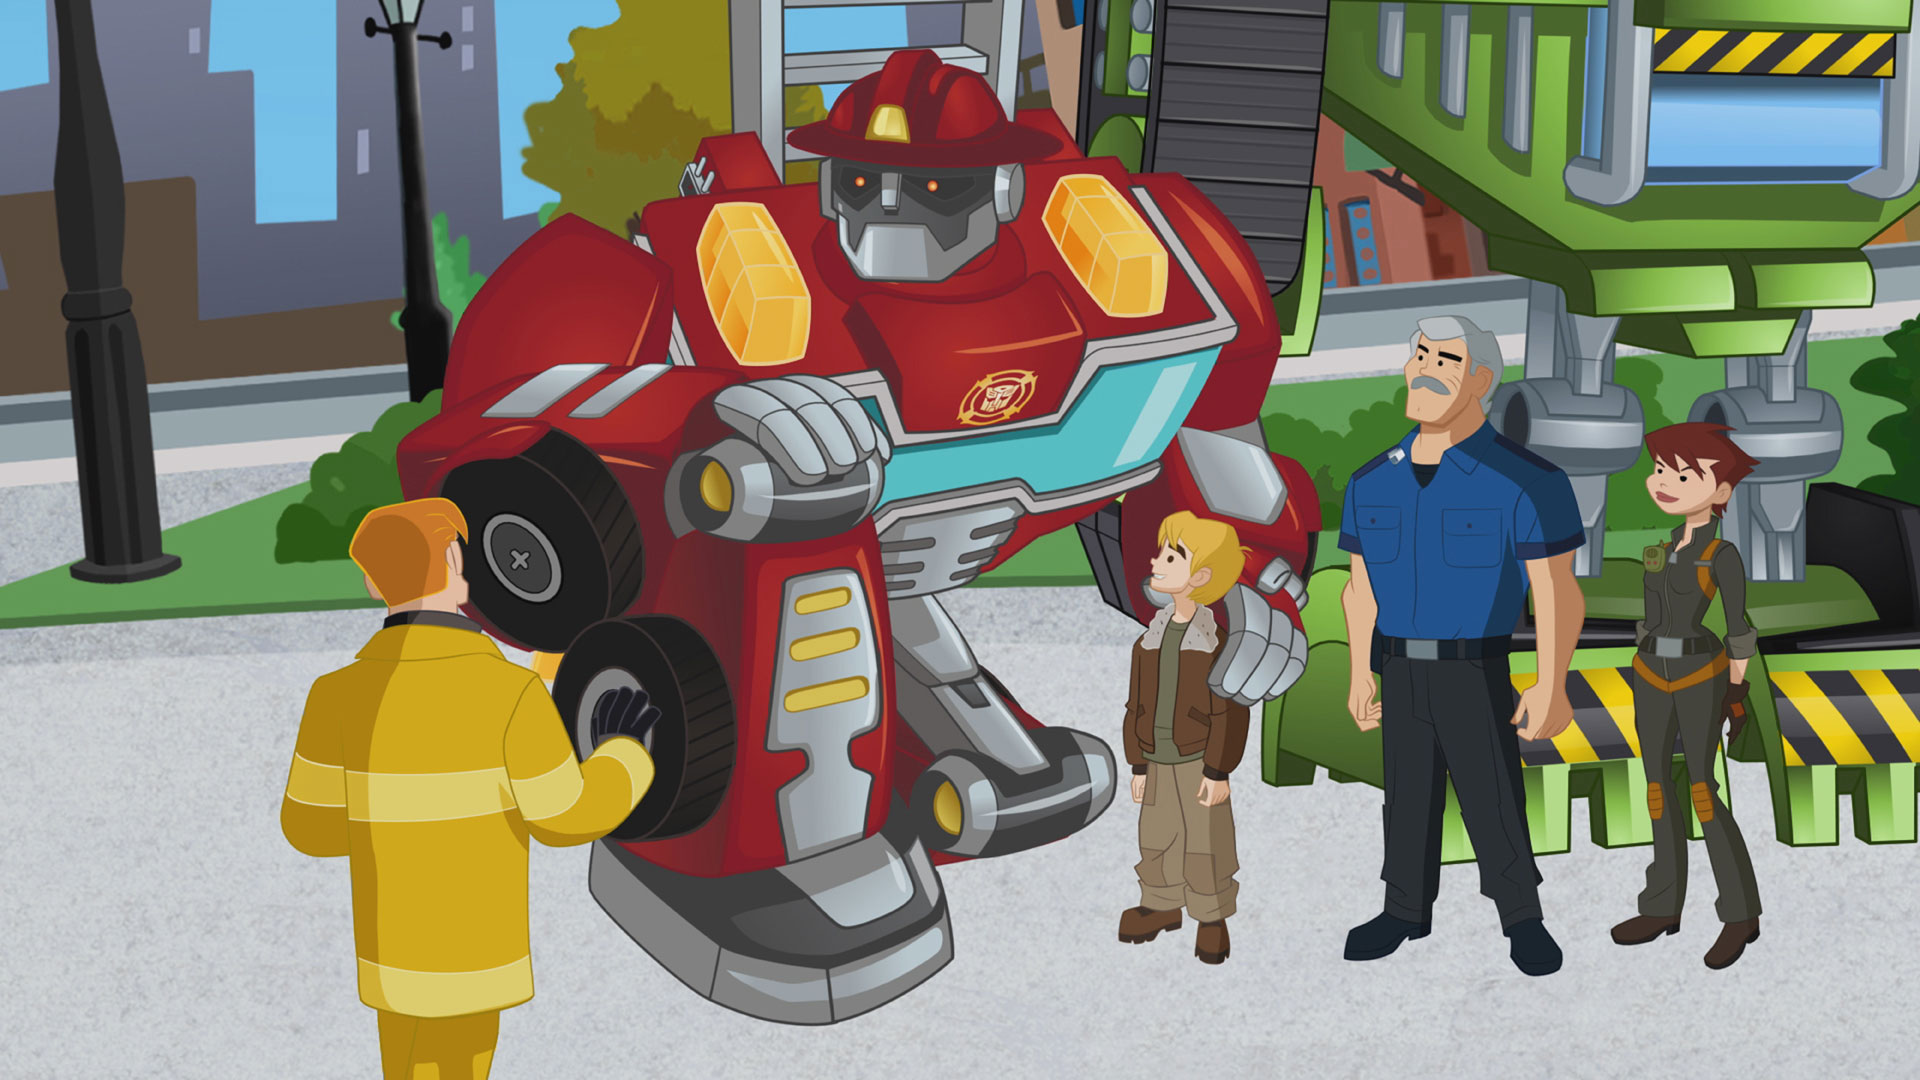 On The One Hand Transformers Rescue Bots Goes Out Of Its Way To Balance Importance Both Human And Robotic Characters